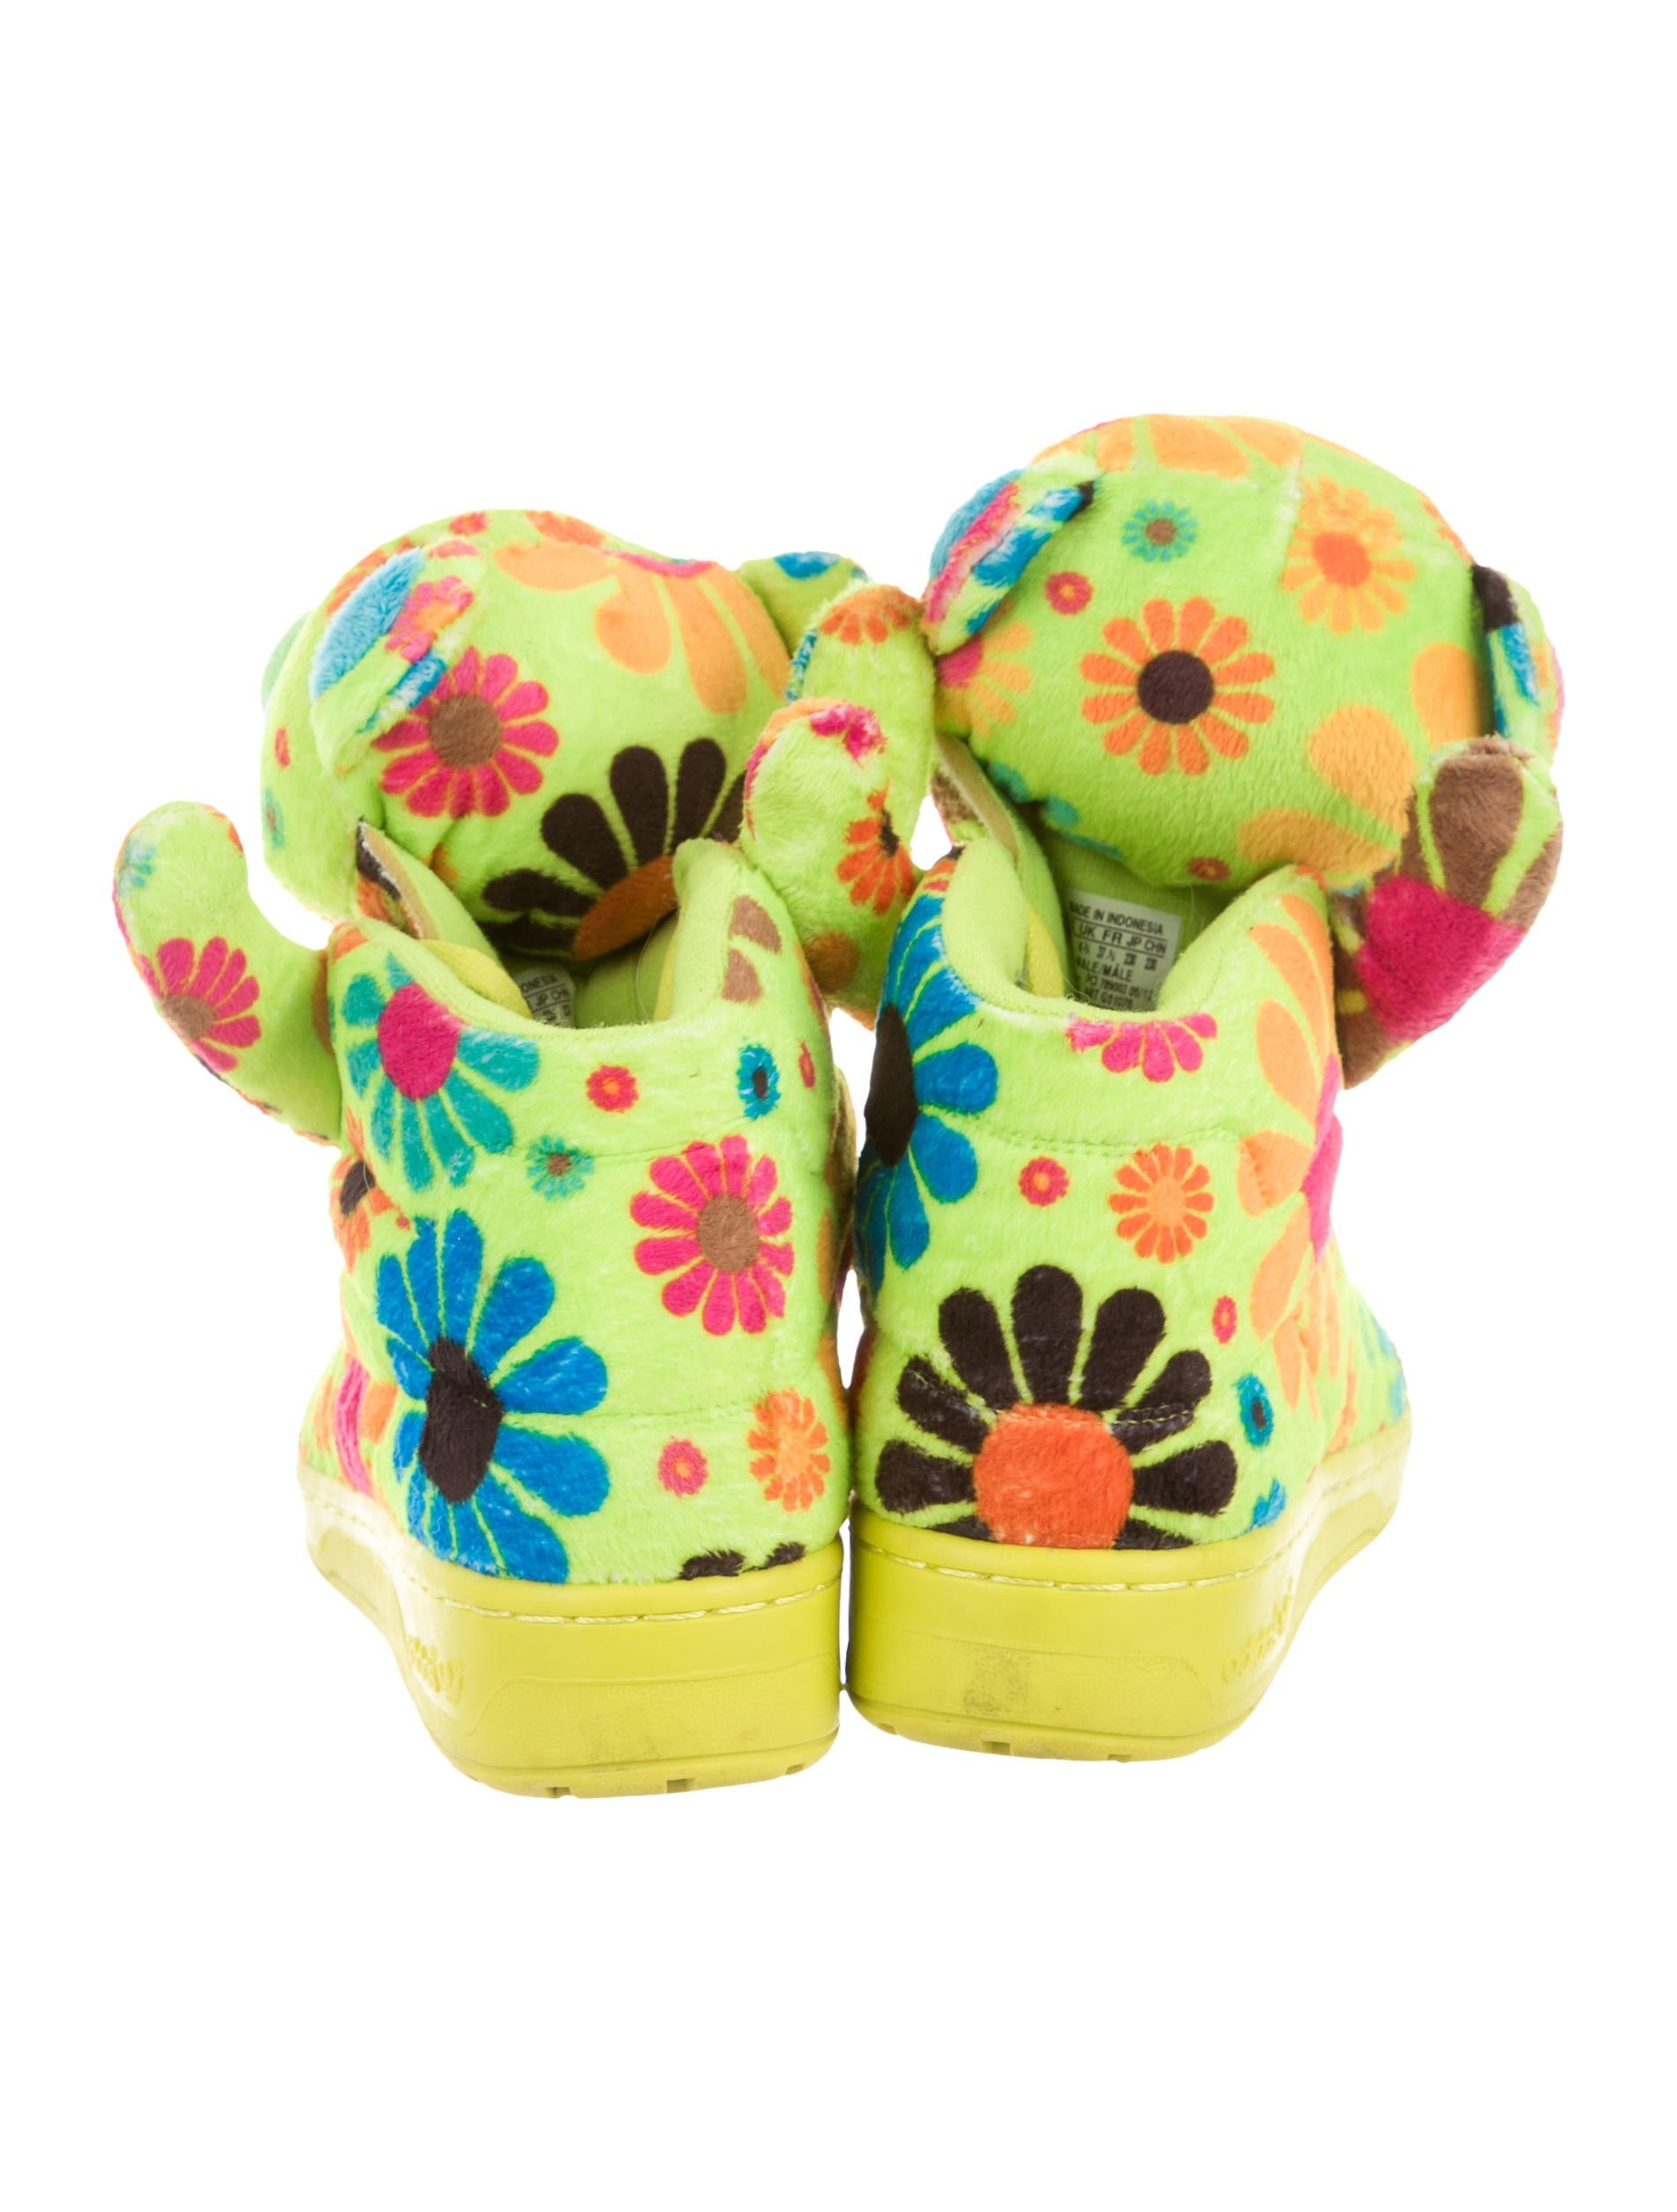 Jeremy Scott x Adidas Floral Bear High Top Sneakers  : WJA201174enlarged from www.therealreal.com size 1901 x 2508 jpeg 261kB